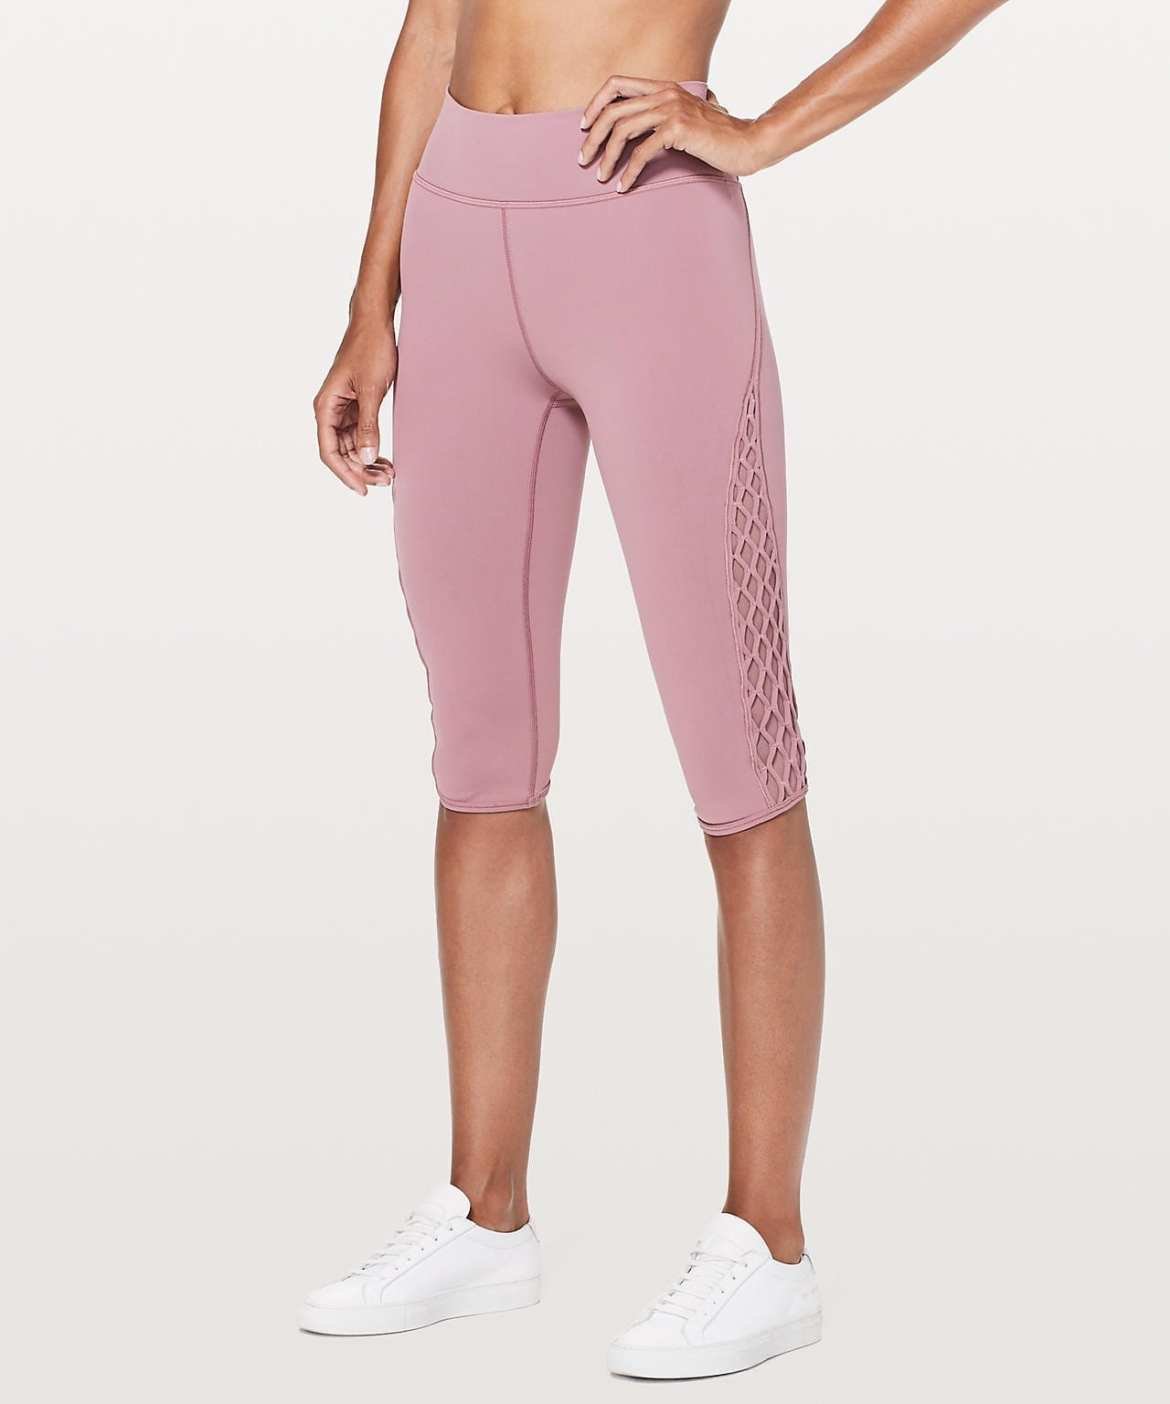 Lululemon Upload - Love Knot Crop